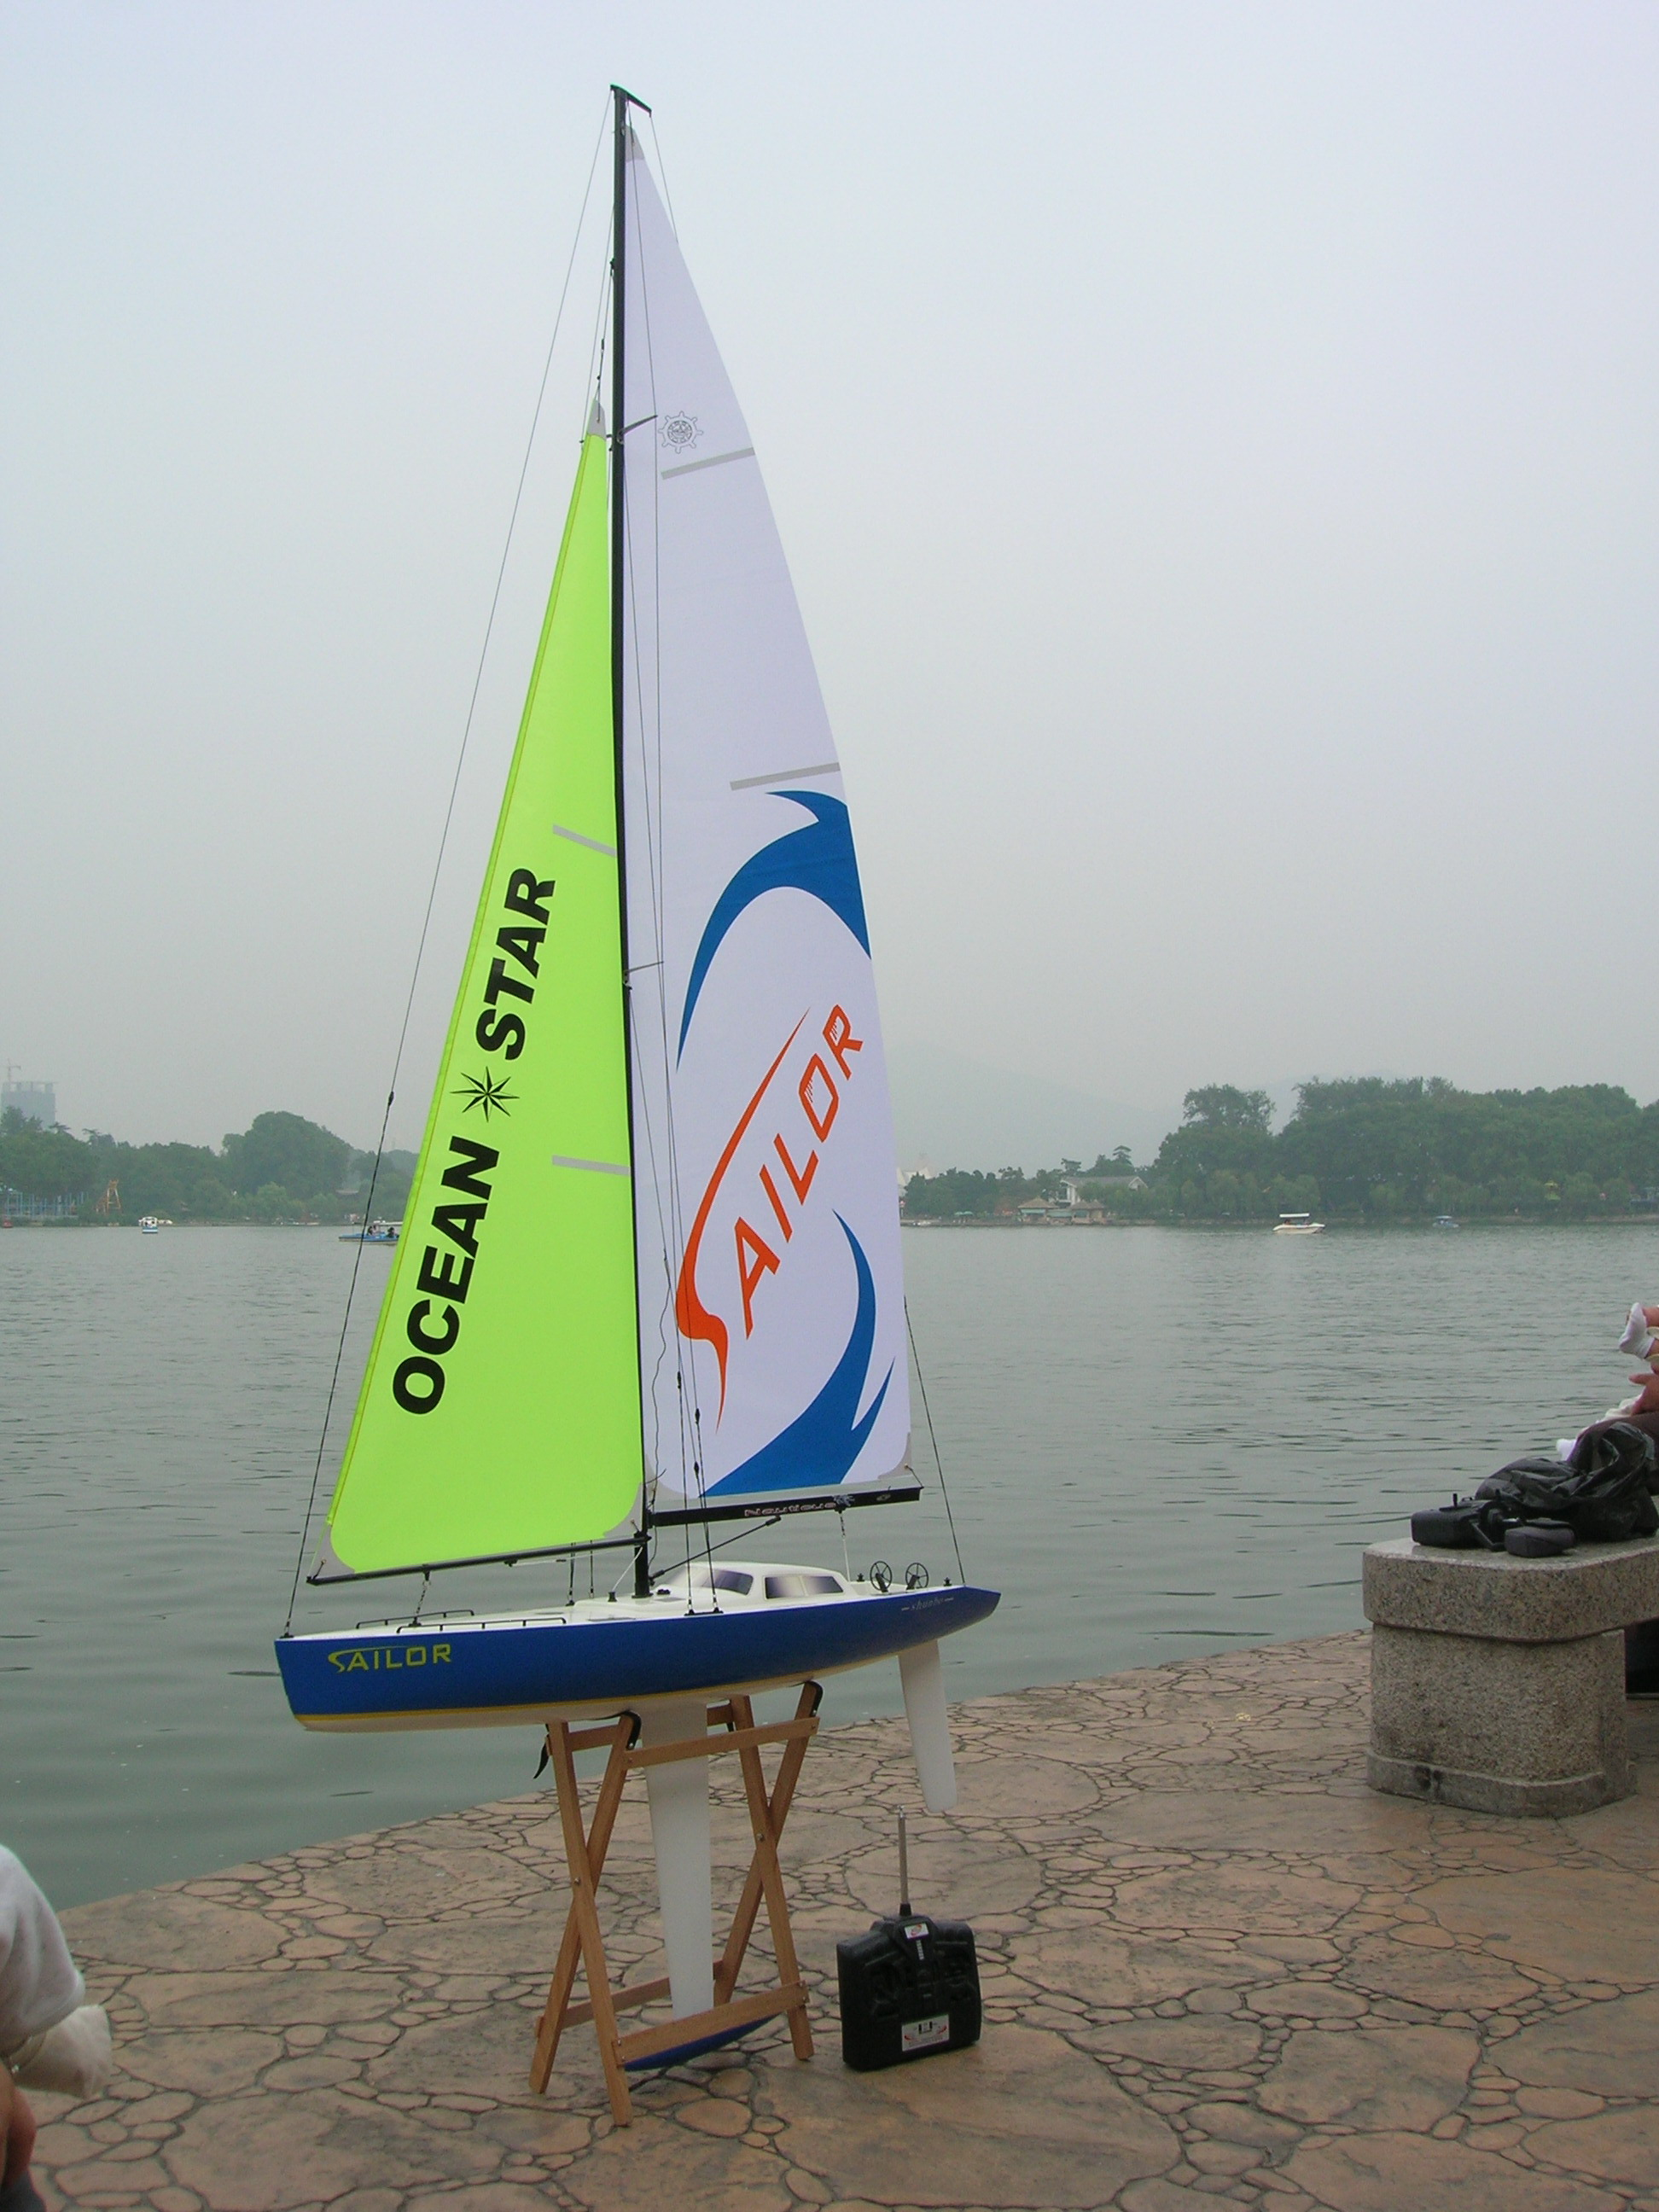 Sailor 1000 Wind Power Racing Sailing Boat